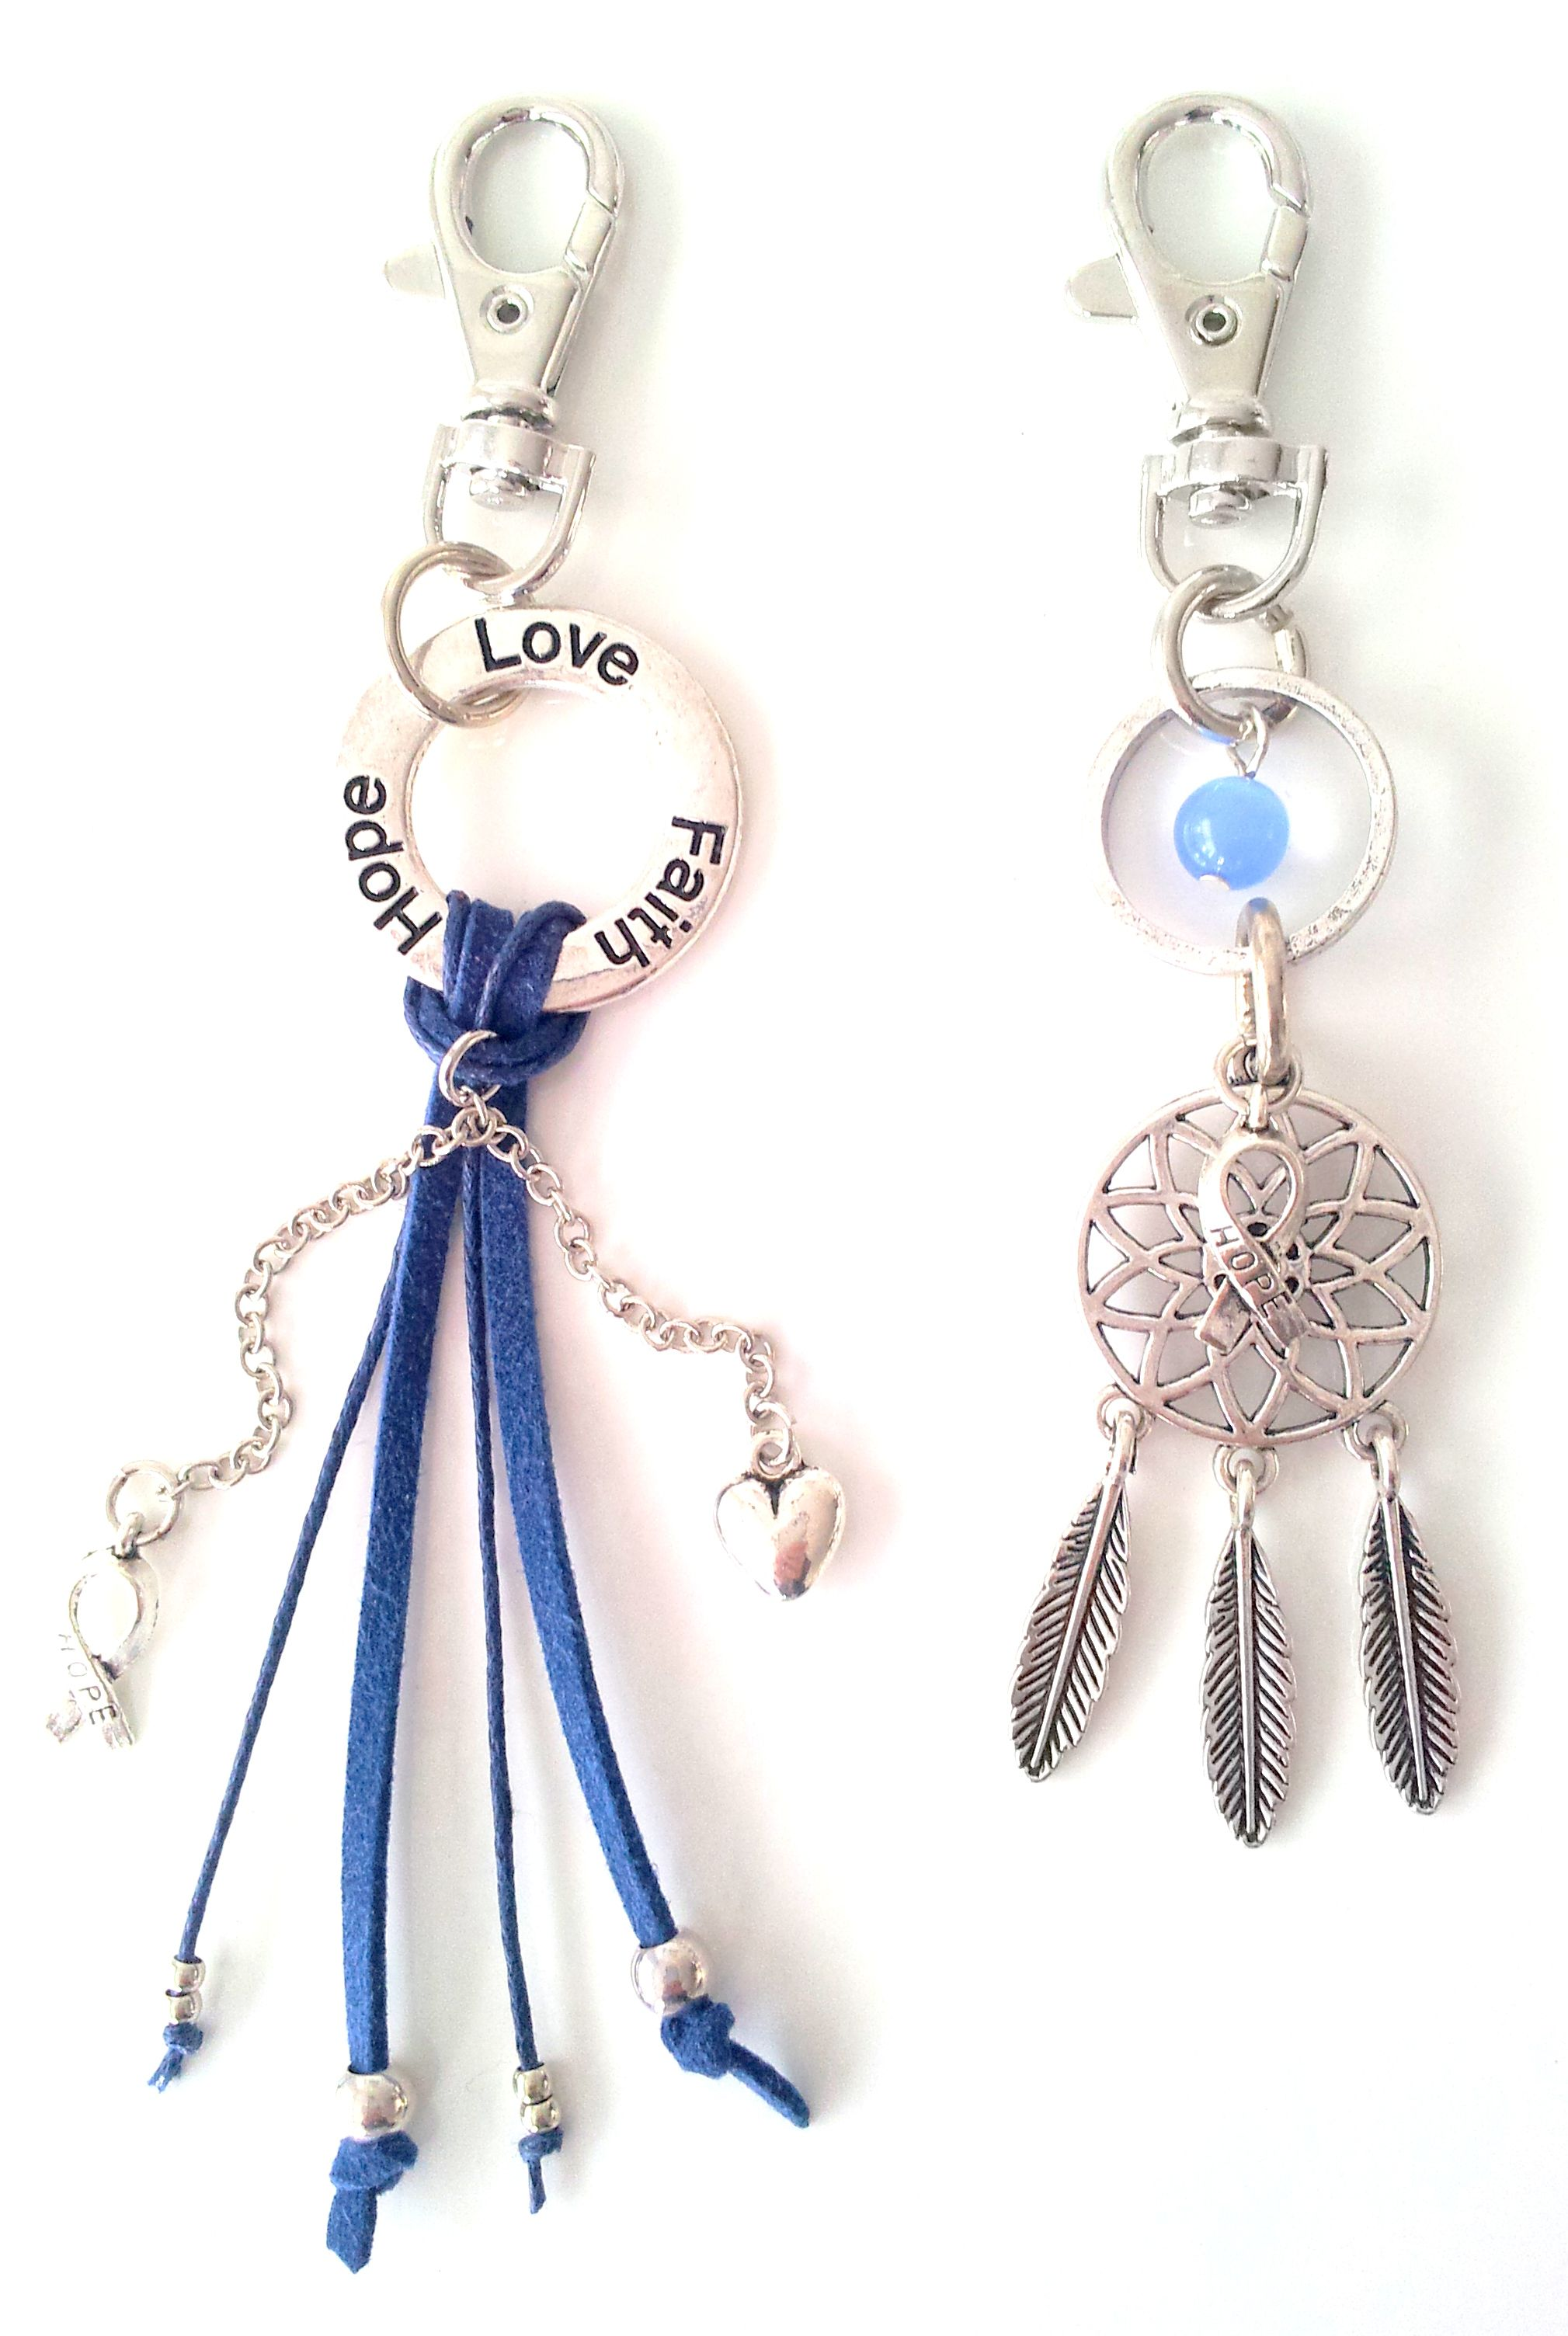 Hope Love Faith Silver & Blue sleutelhanger & Love Dreamcatcher Silver & Blue sleutelhanger voor Pink Ribbon € 14,95 per stuk -> Jewellicious Designs doneert € 2,03 per sleutelhanger aan Pink Ribbon.